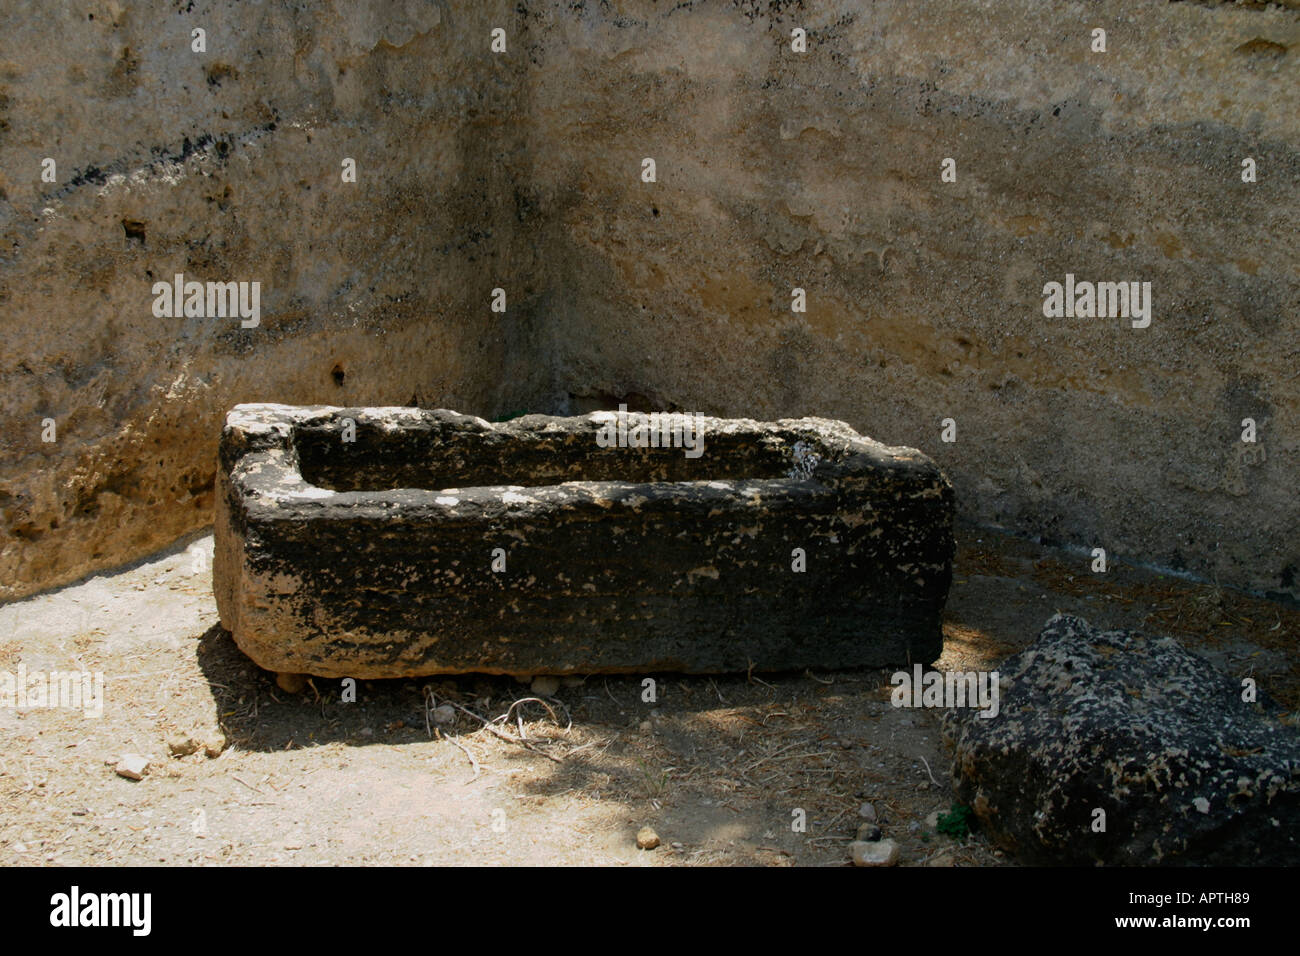 Sicily Italy Burial Stock Photos & Sicily Italy Burial Stock Images